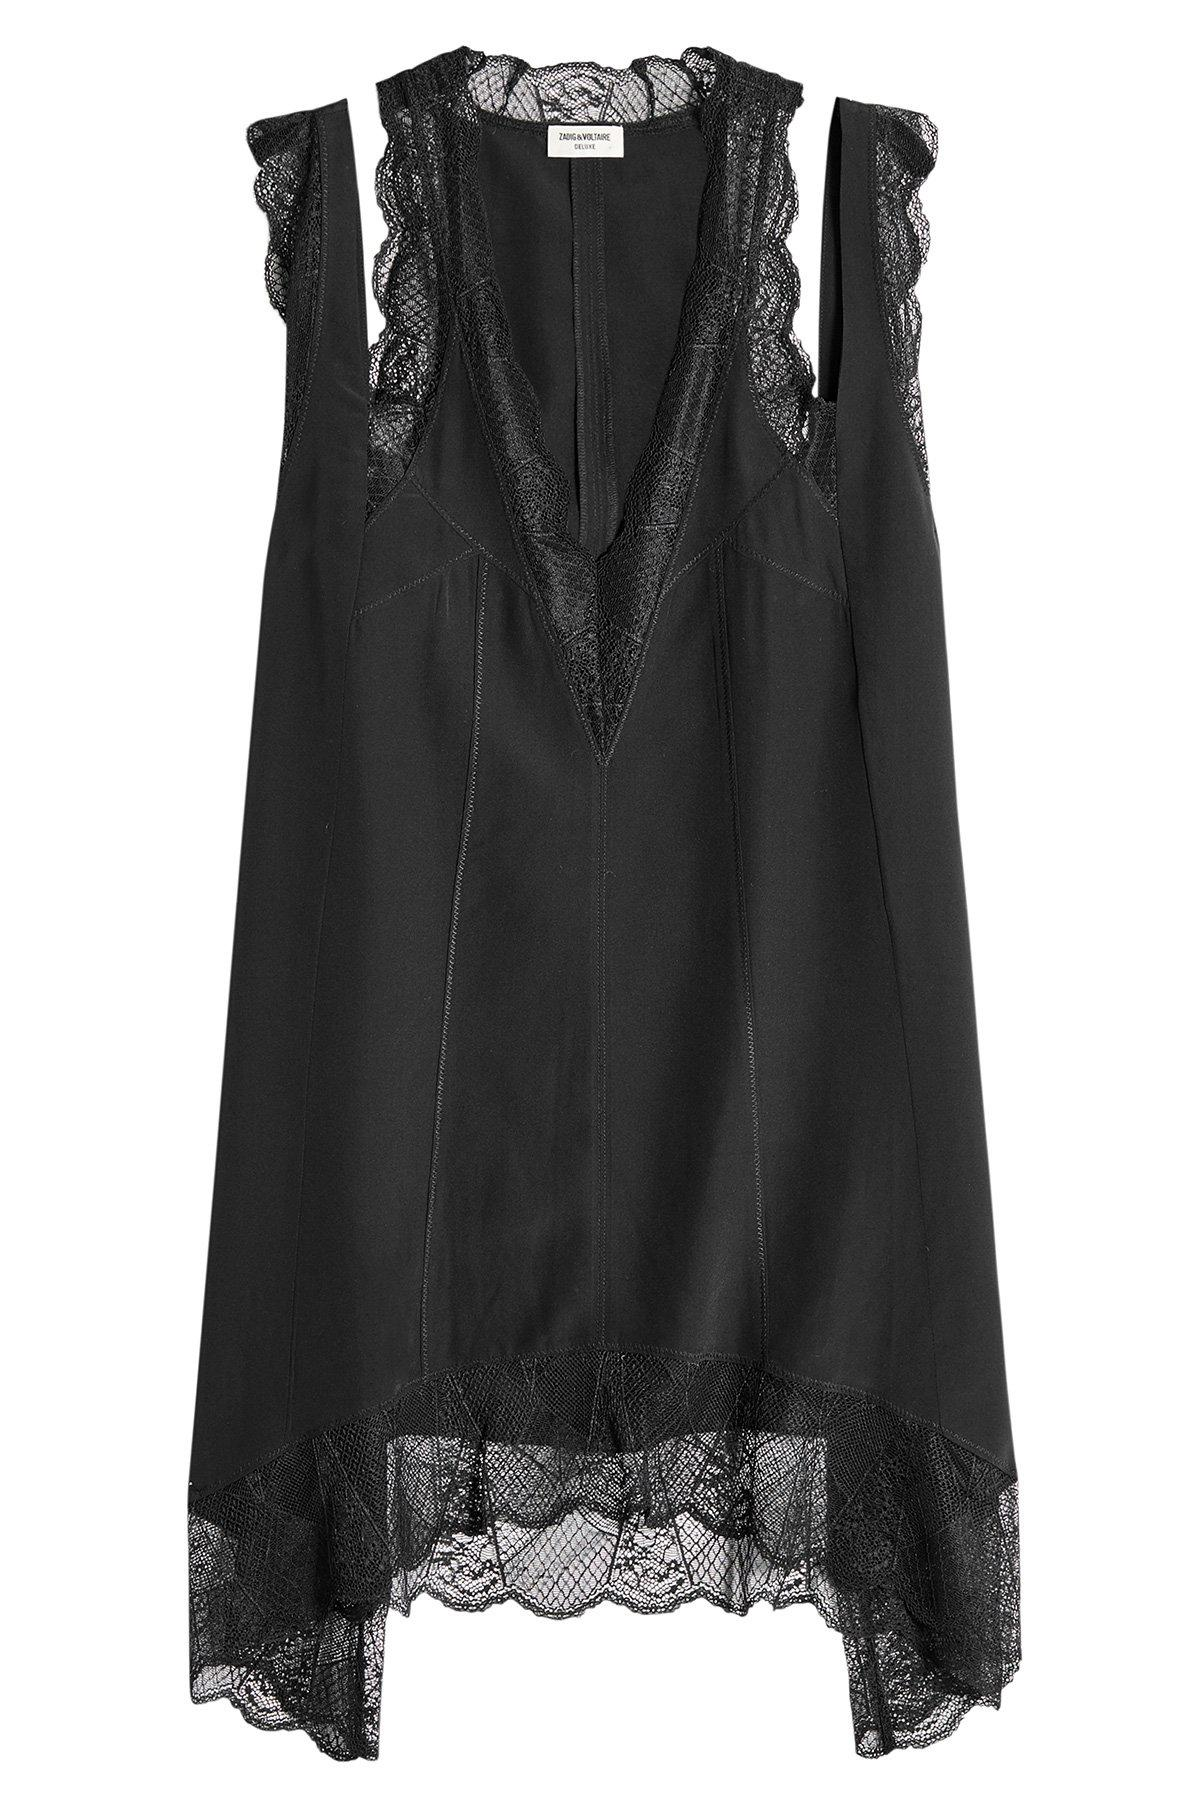 Zadig & Voltaire Silk Dress With Lace In Black